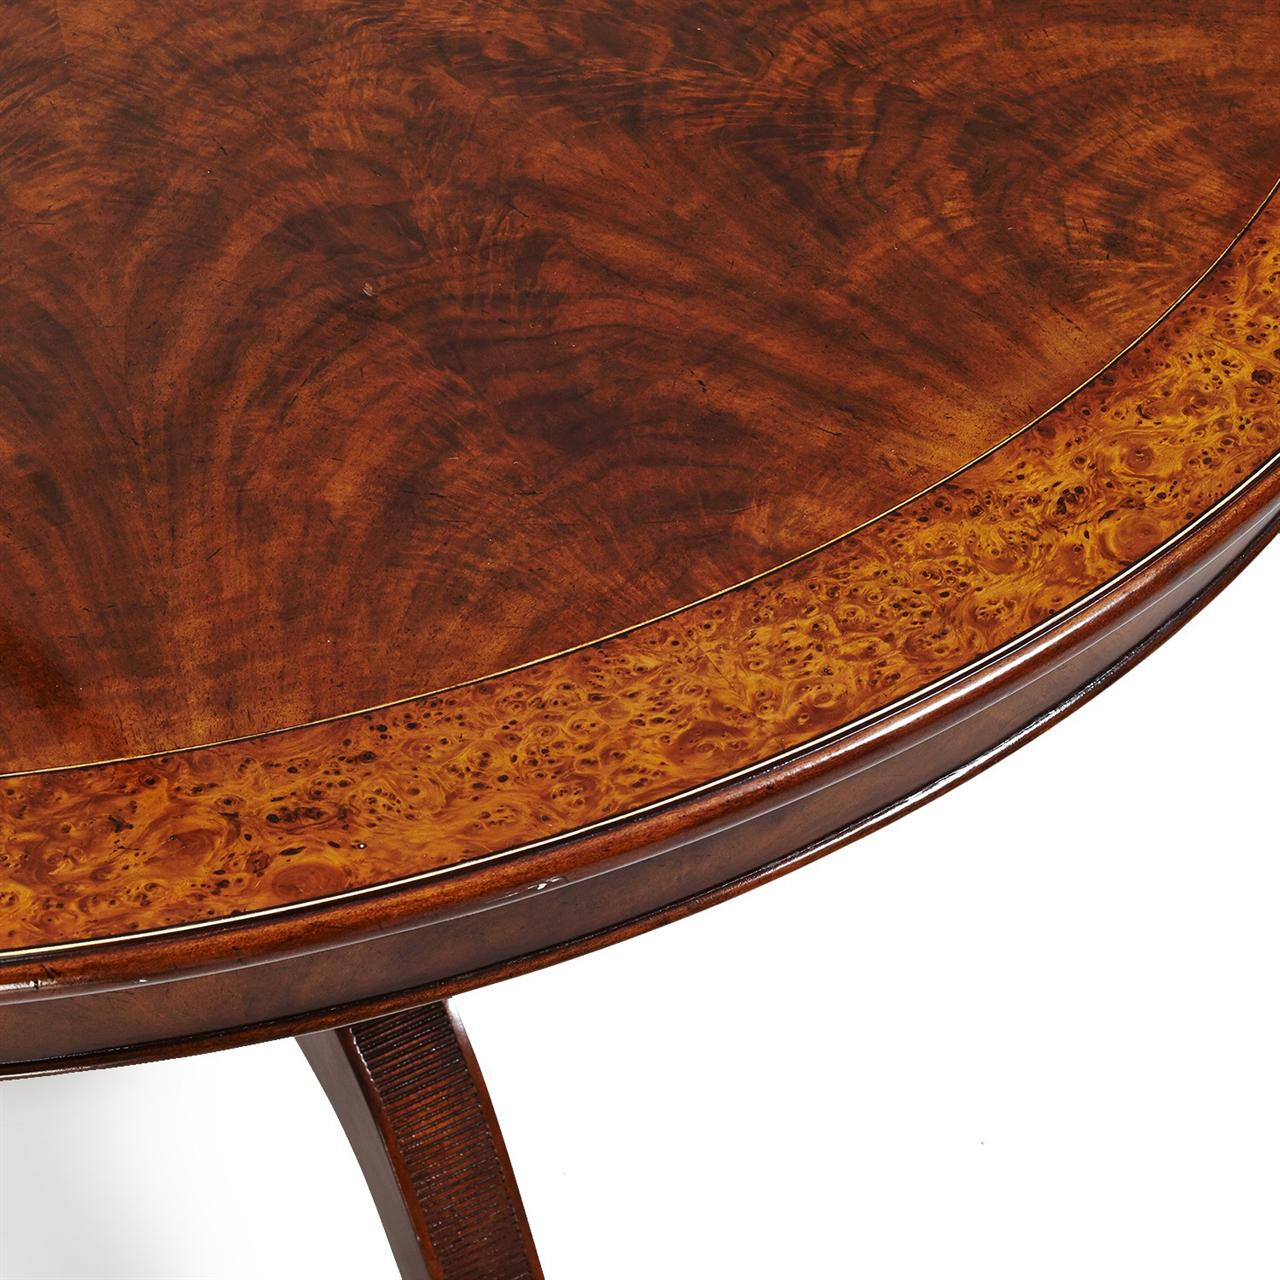 48 inch round to oval walnut and yew banded dining table 48 round table seats how many